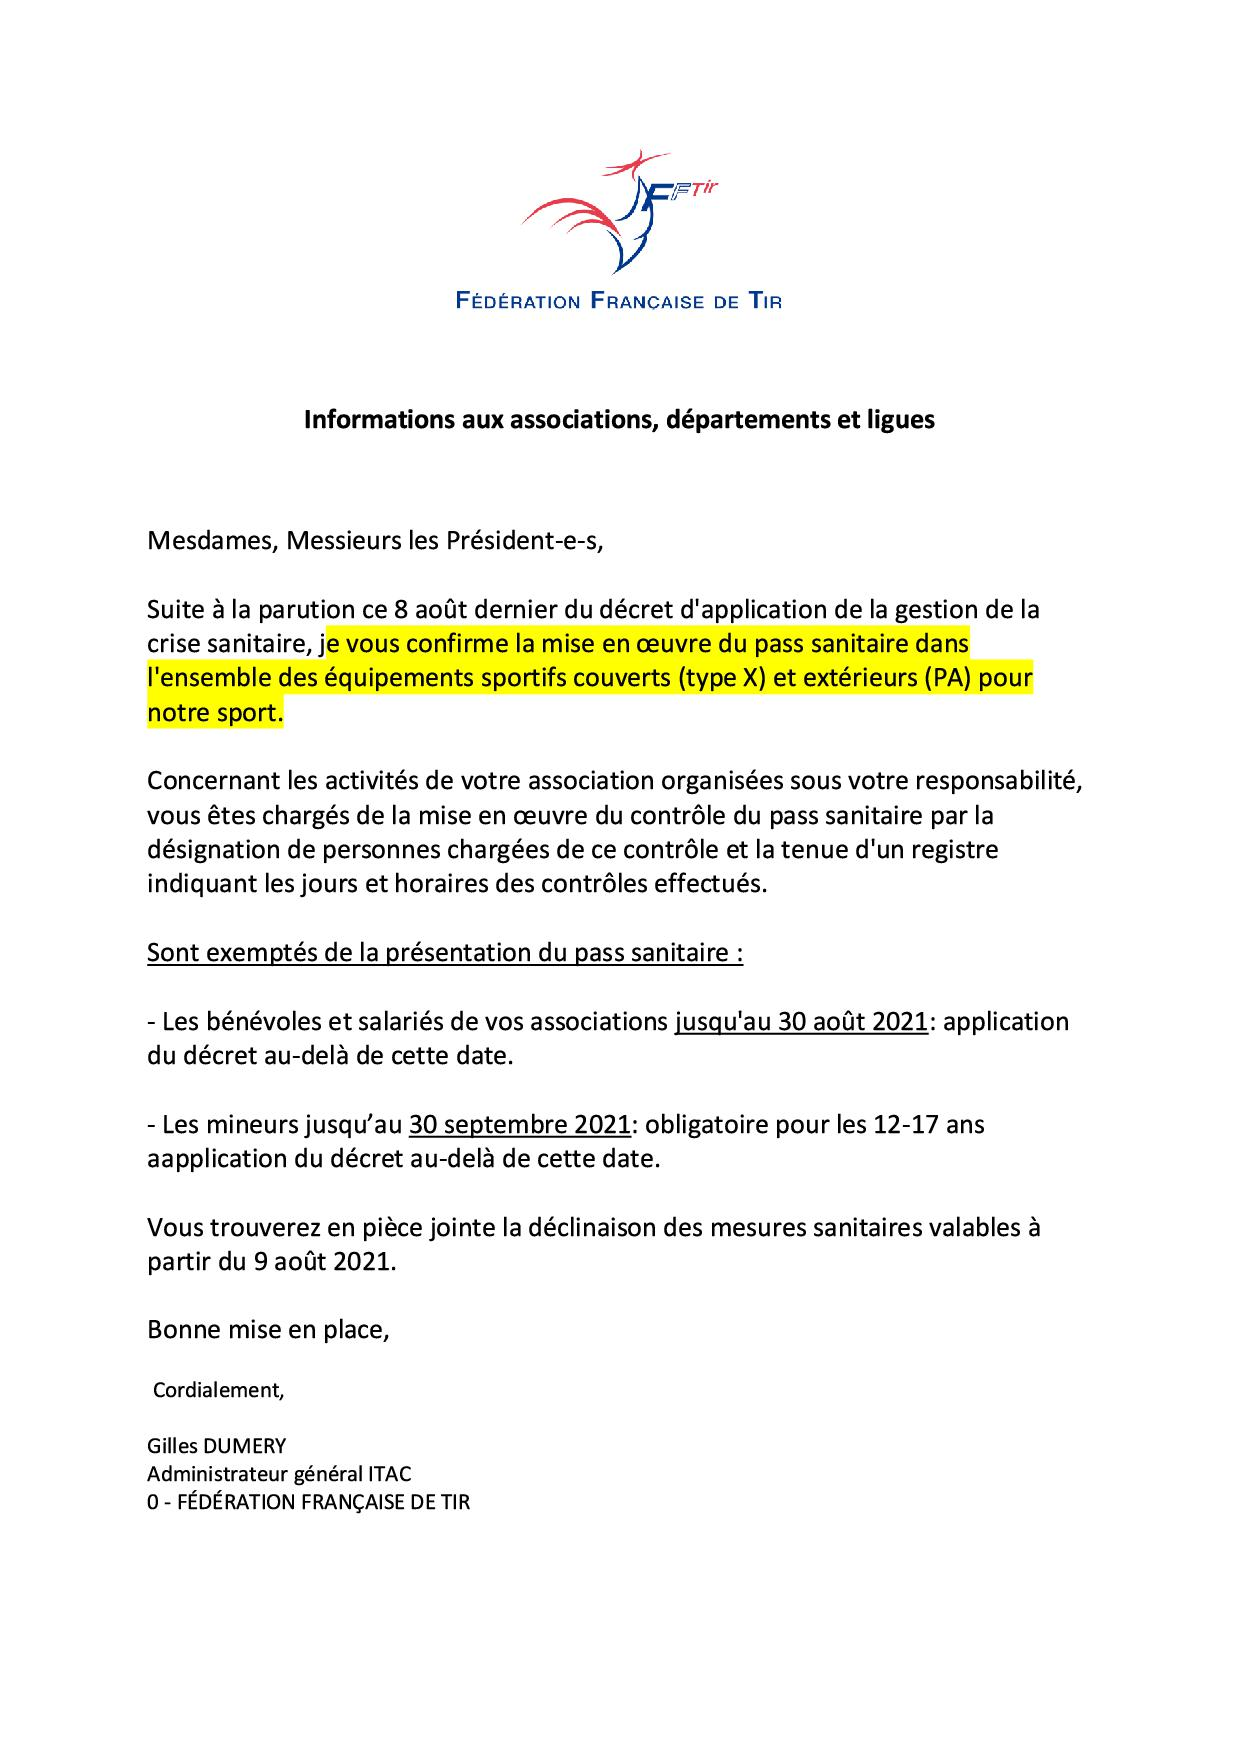 Pass sanitaire 9 aout 2021